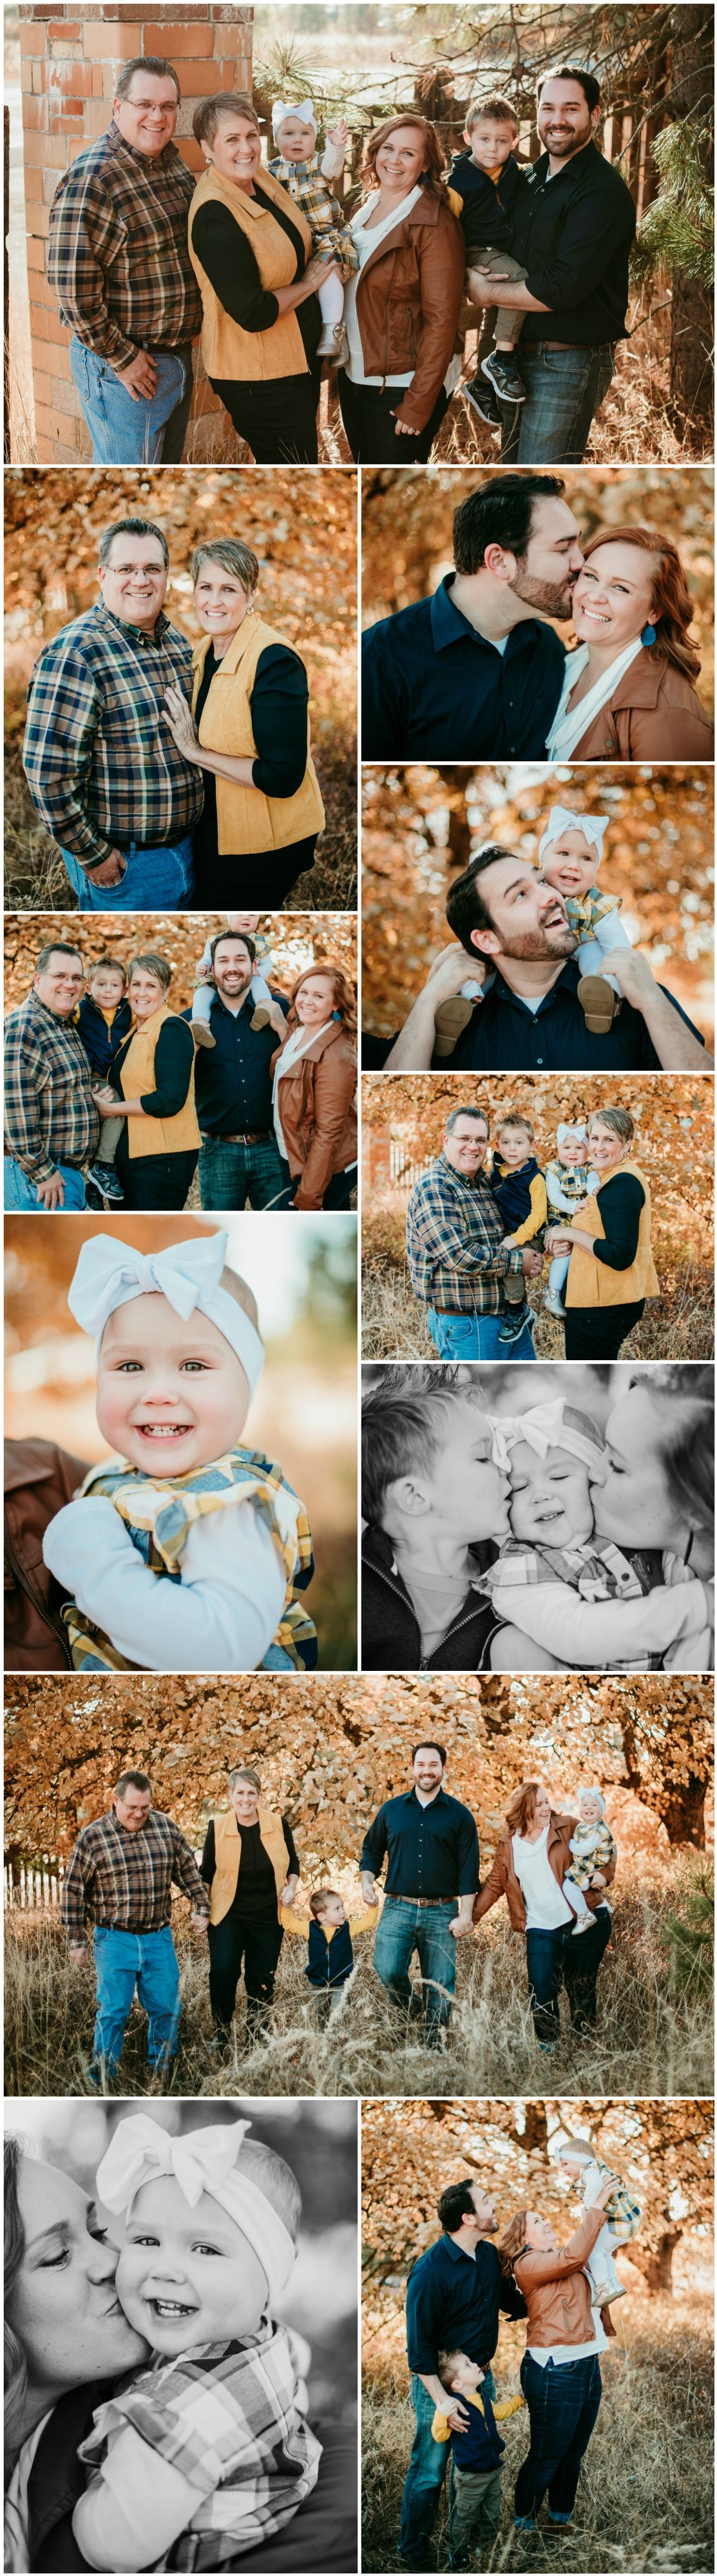 Extended Family Photo Session in Fall During Golden Hour in Spokane, Washington #extendedfamilyphotography